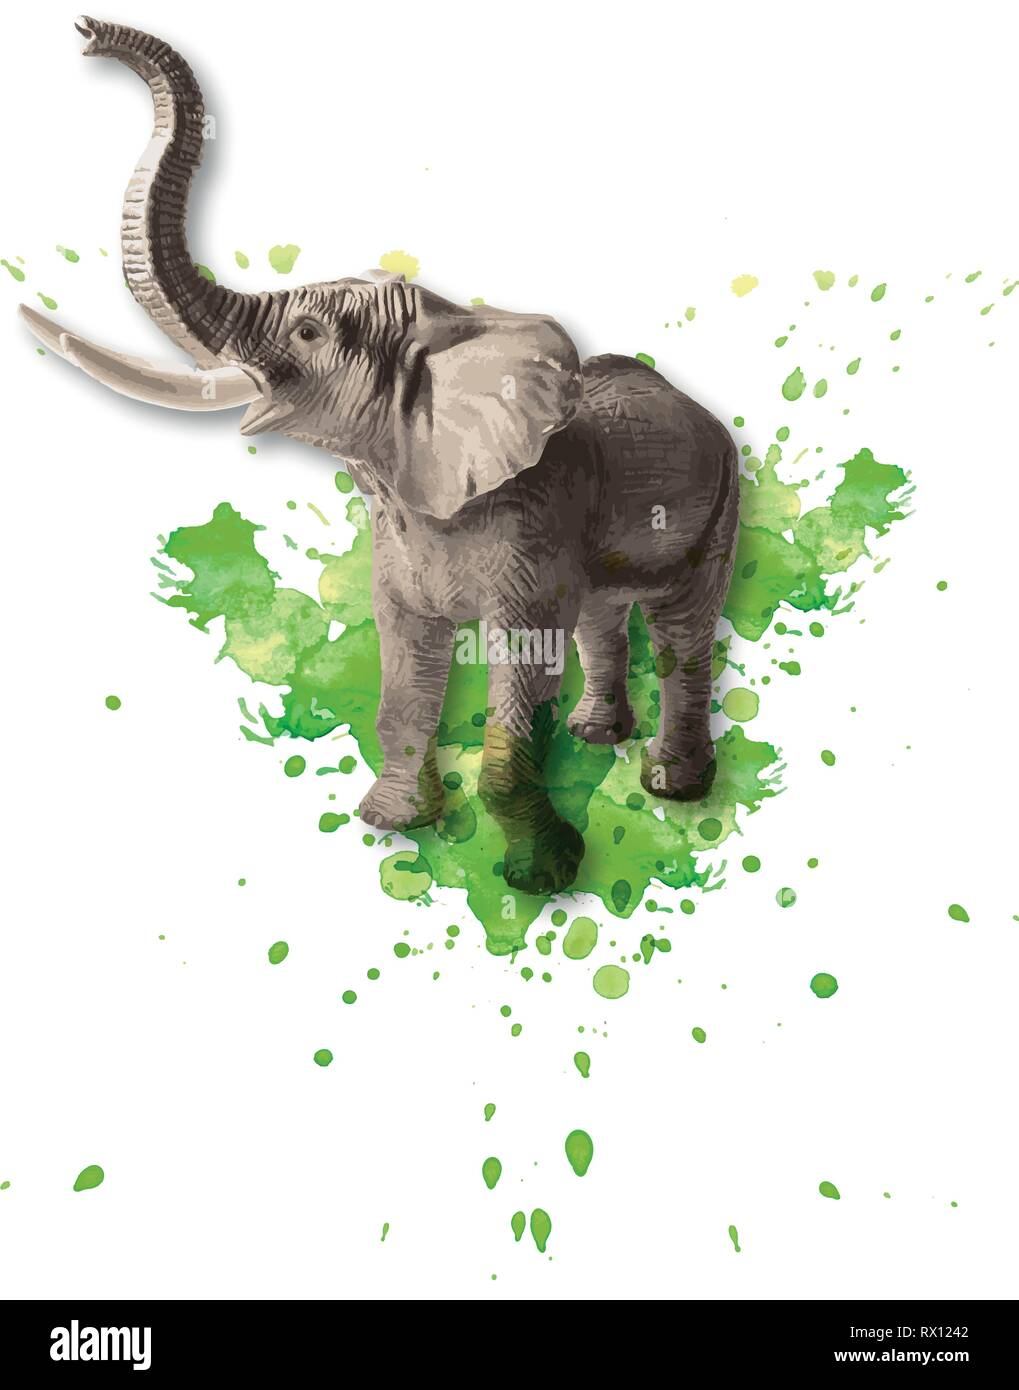 Vector colored illustration of a standing African elephant with watercolor splashes in the background - Stock Vector